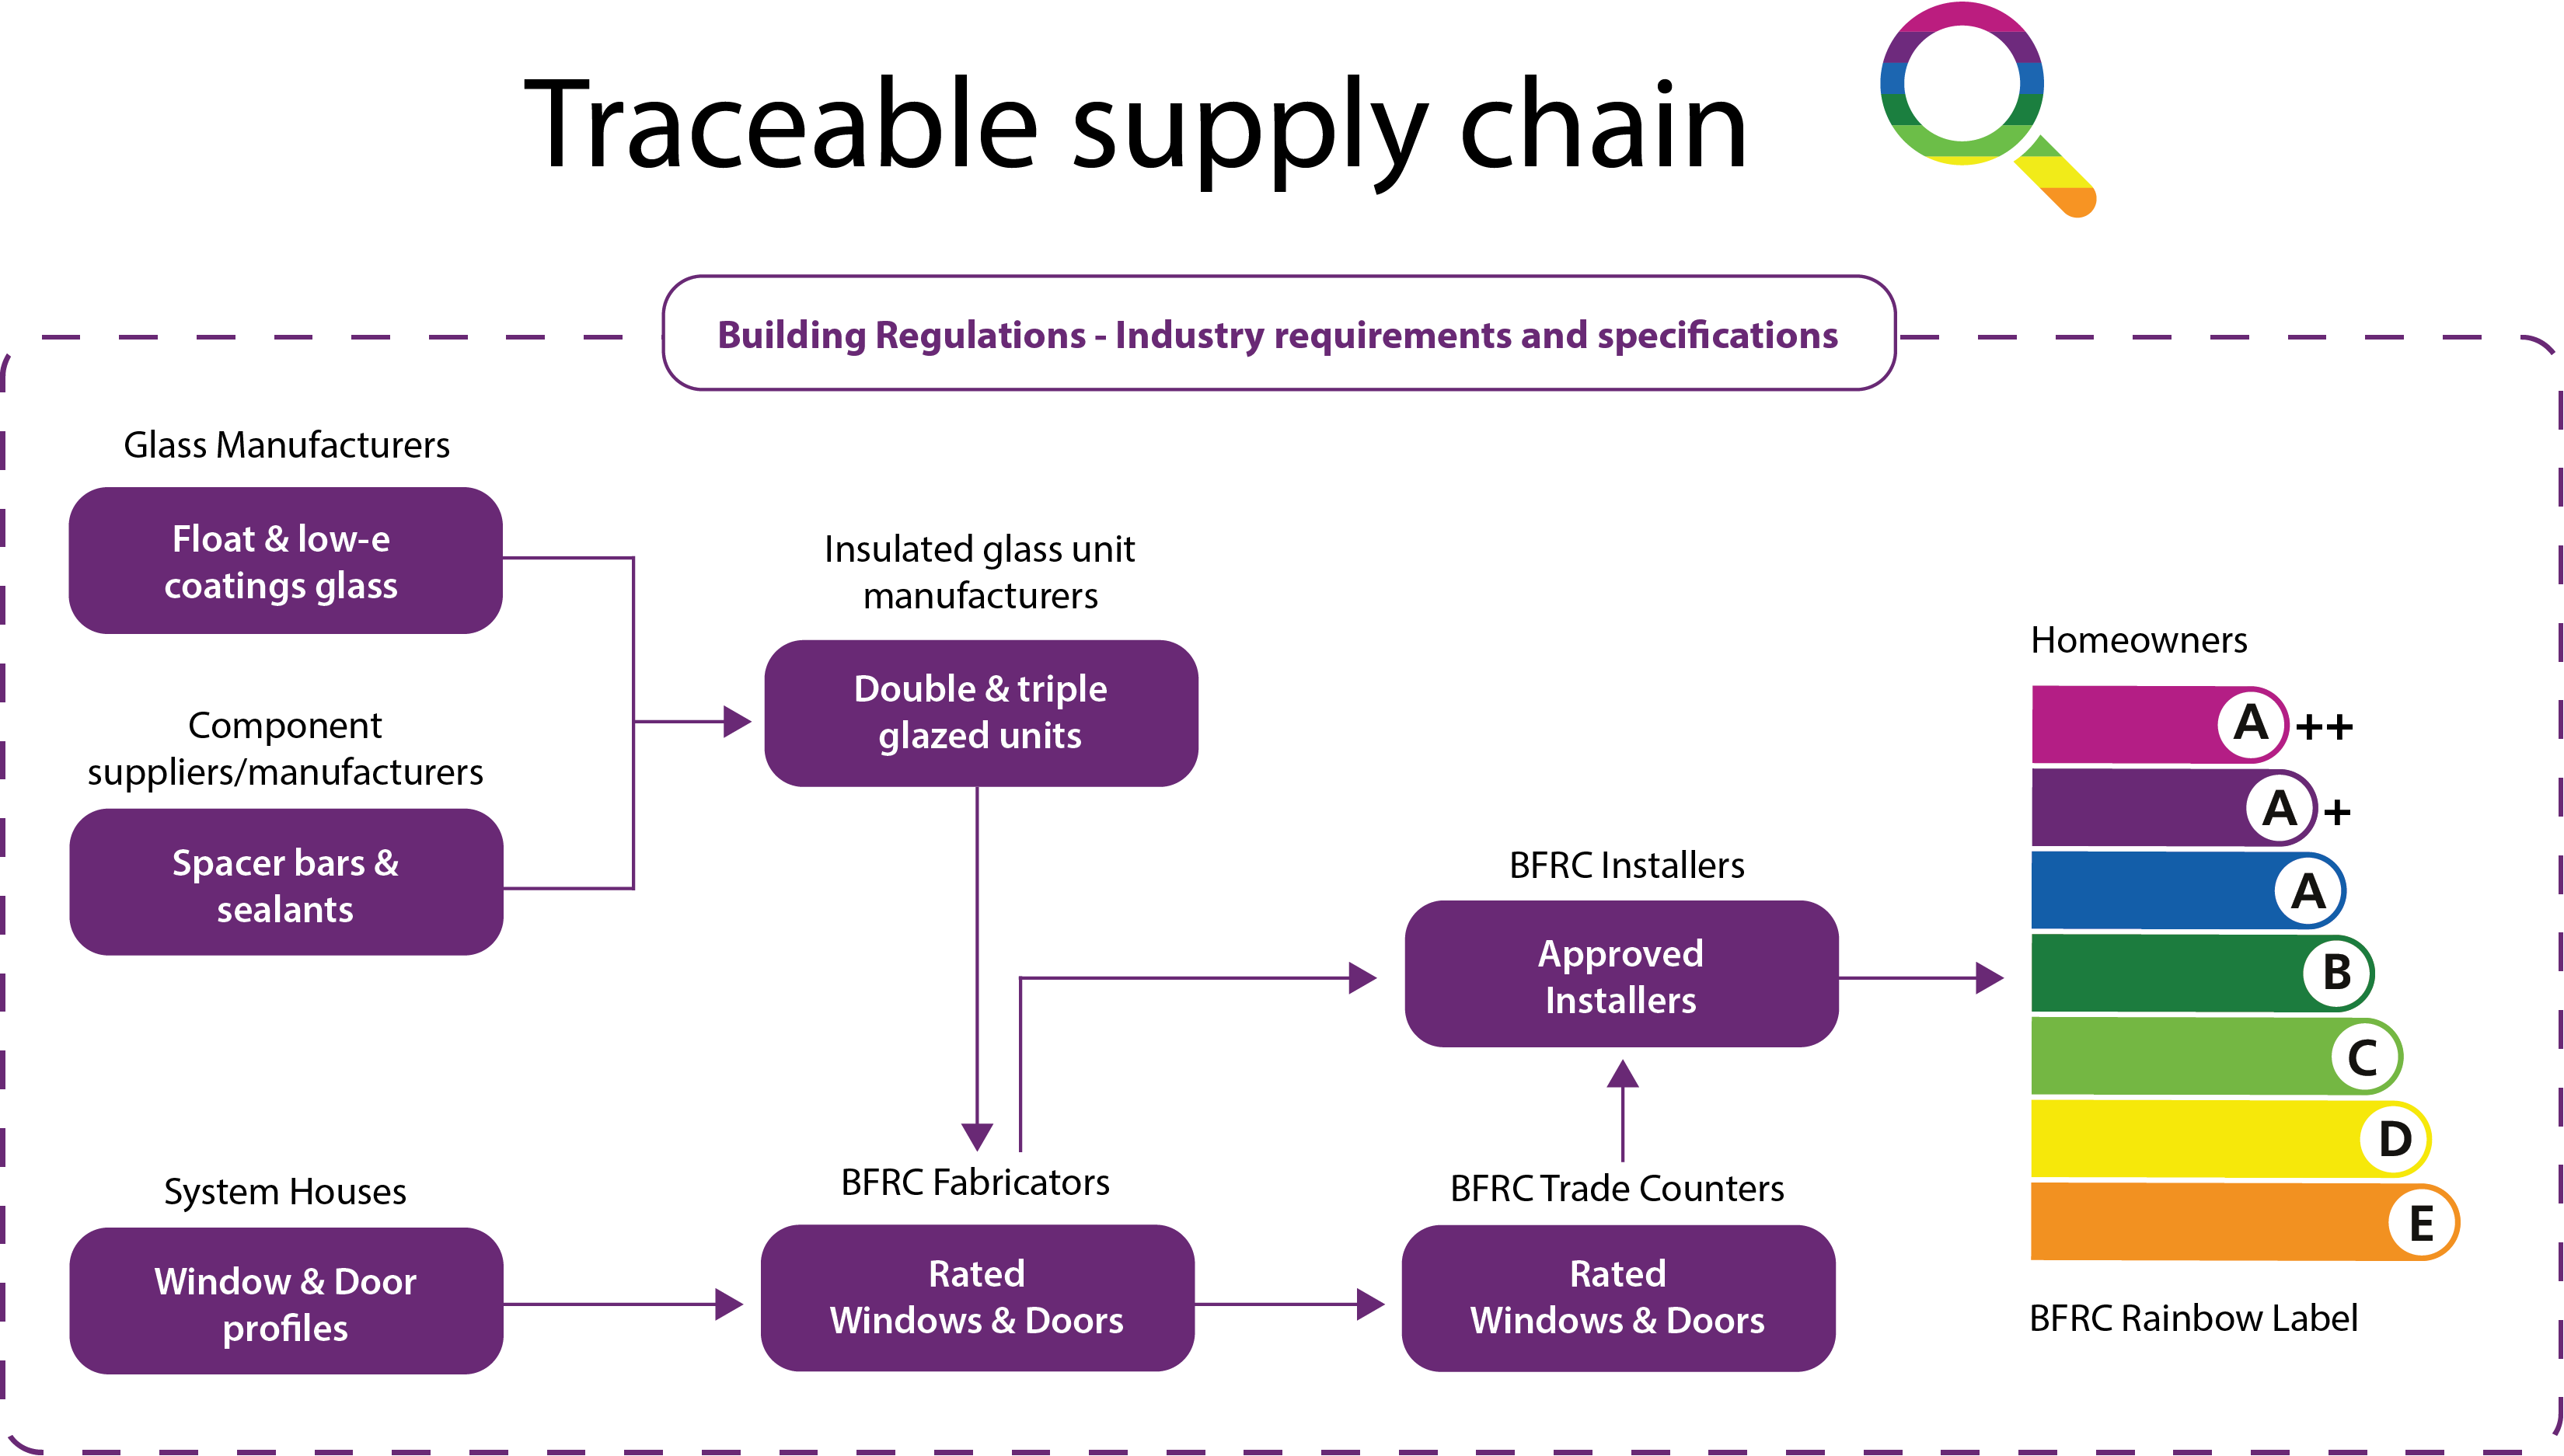 Traceable supply chain